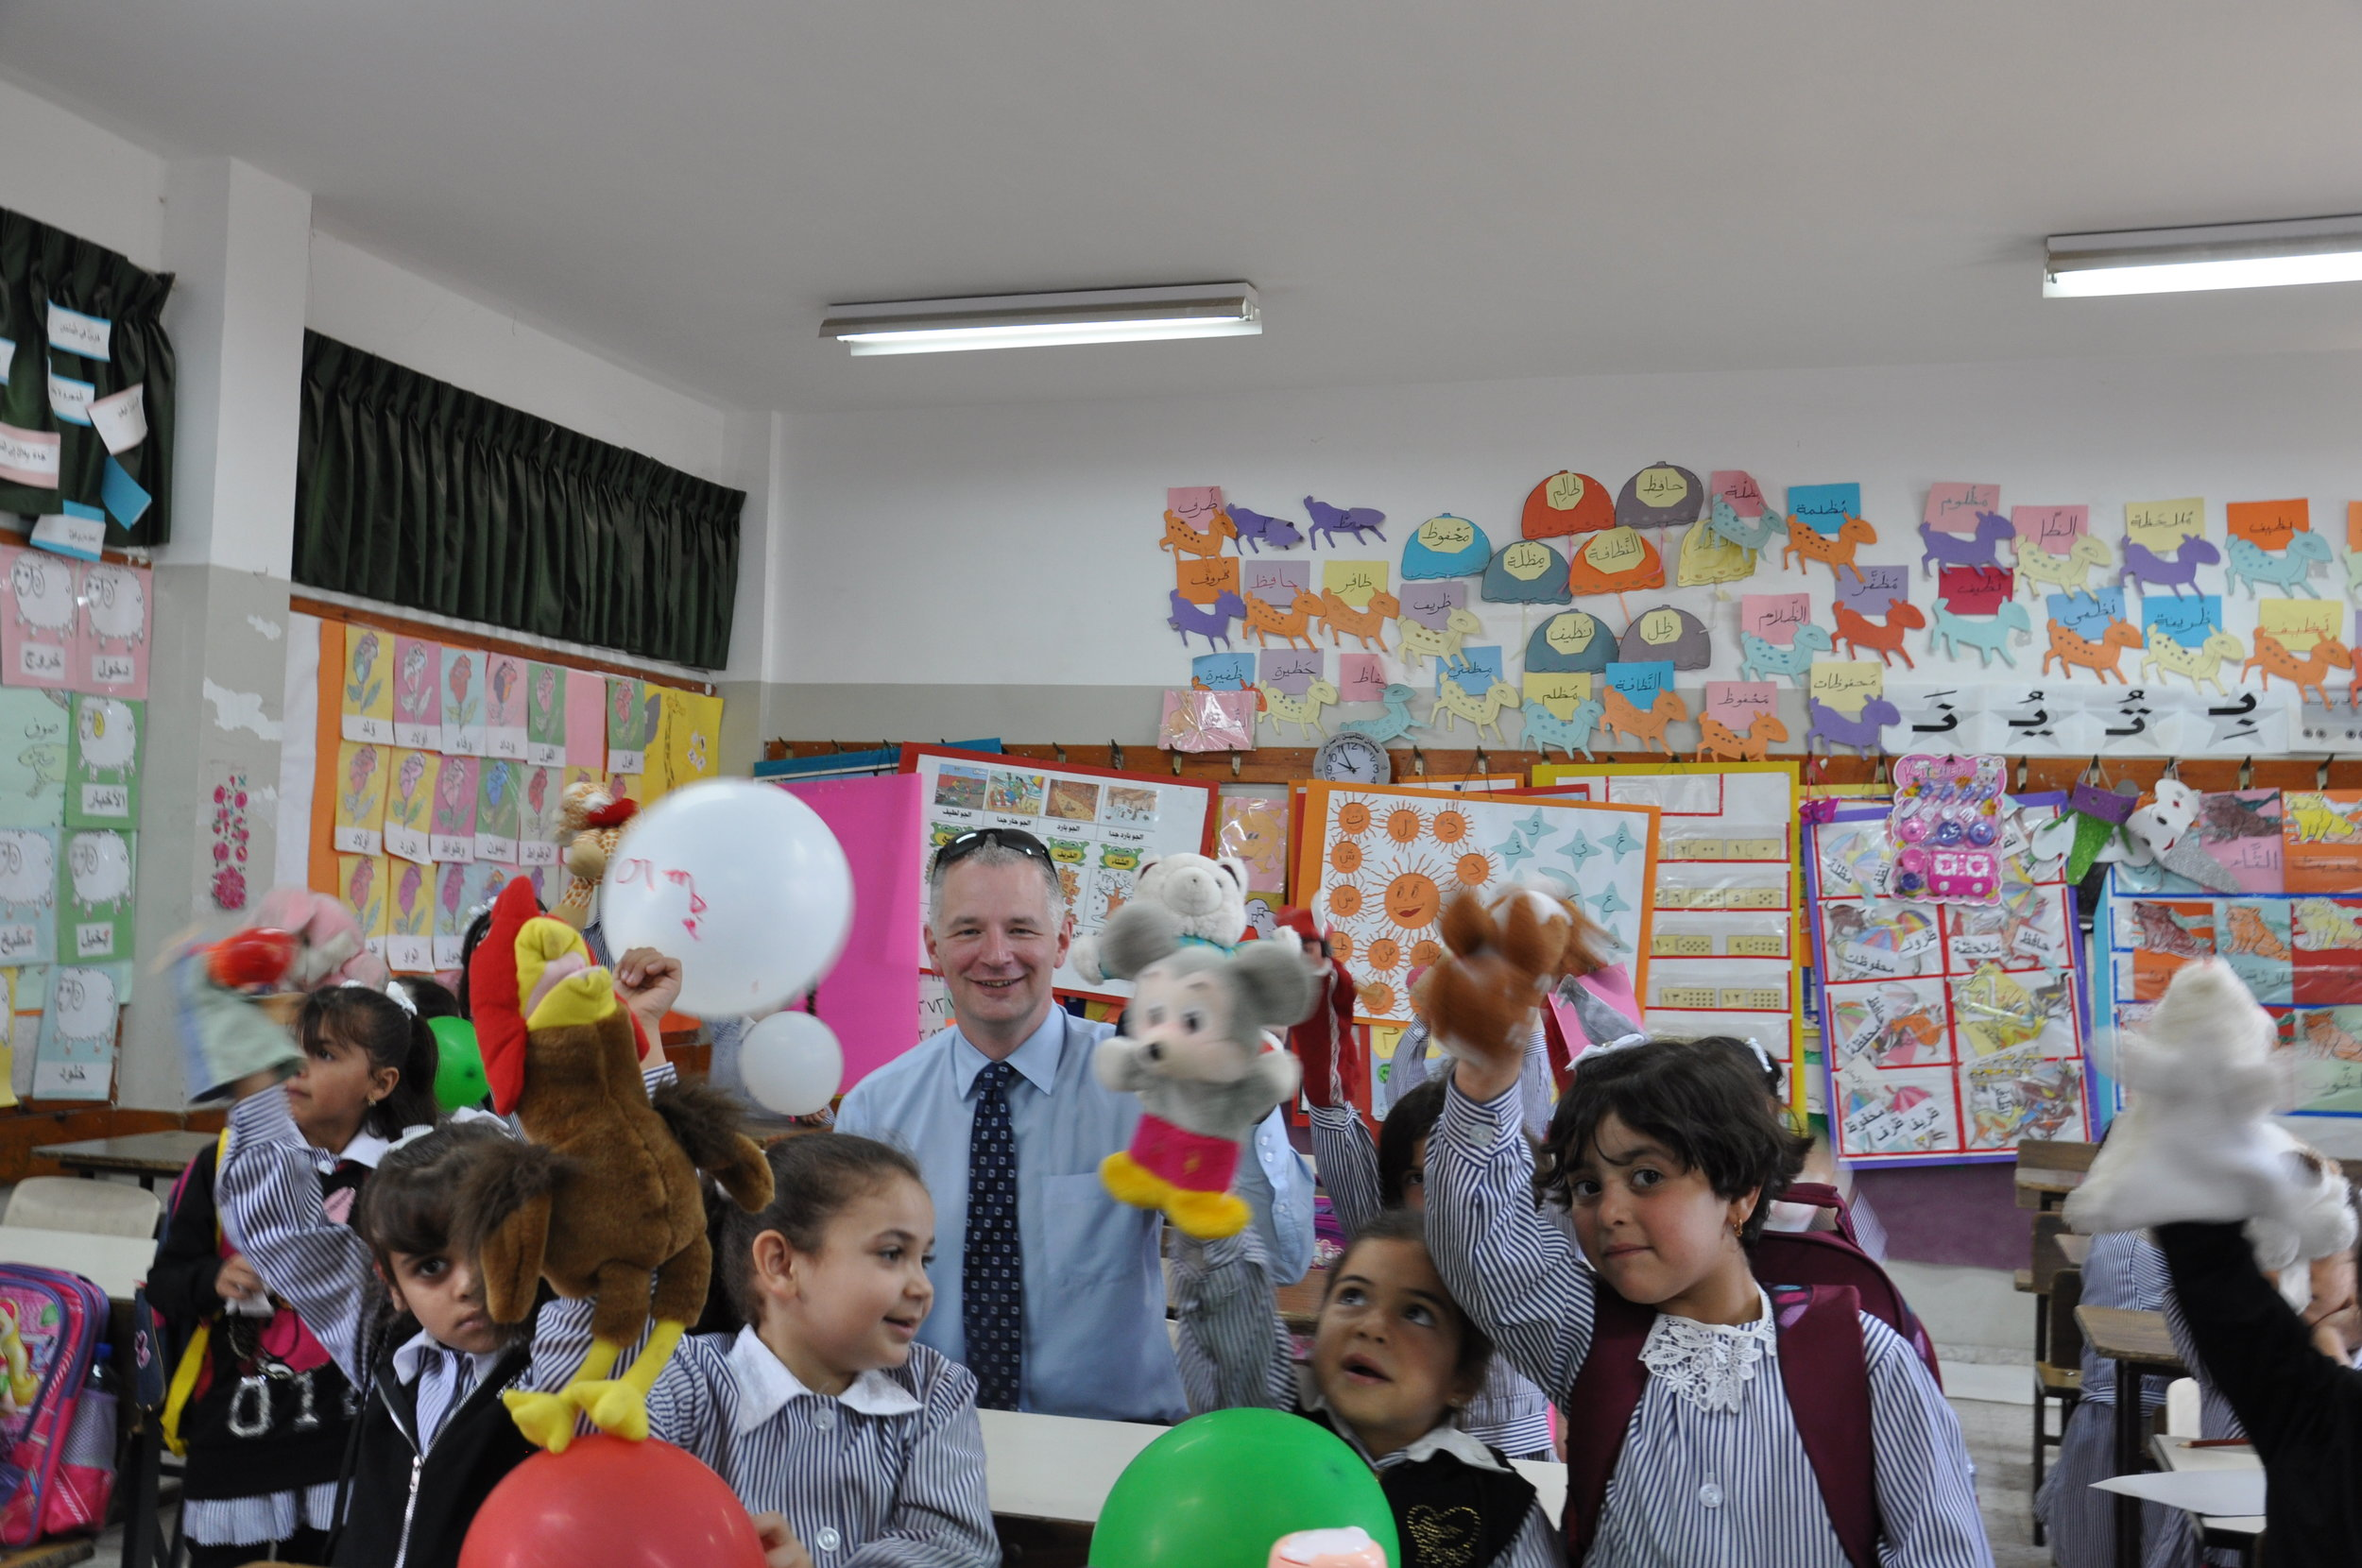 Scott enjoying a day in the classroom with some UNRWA students